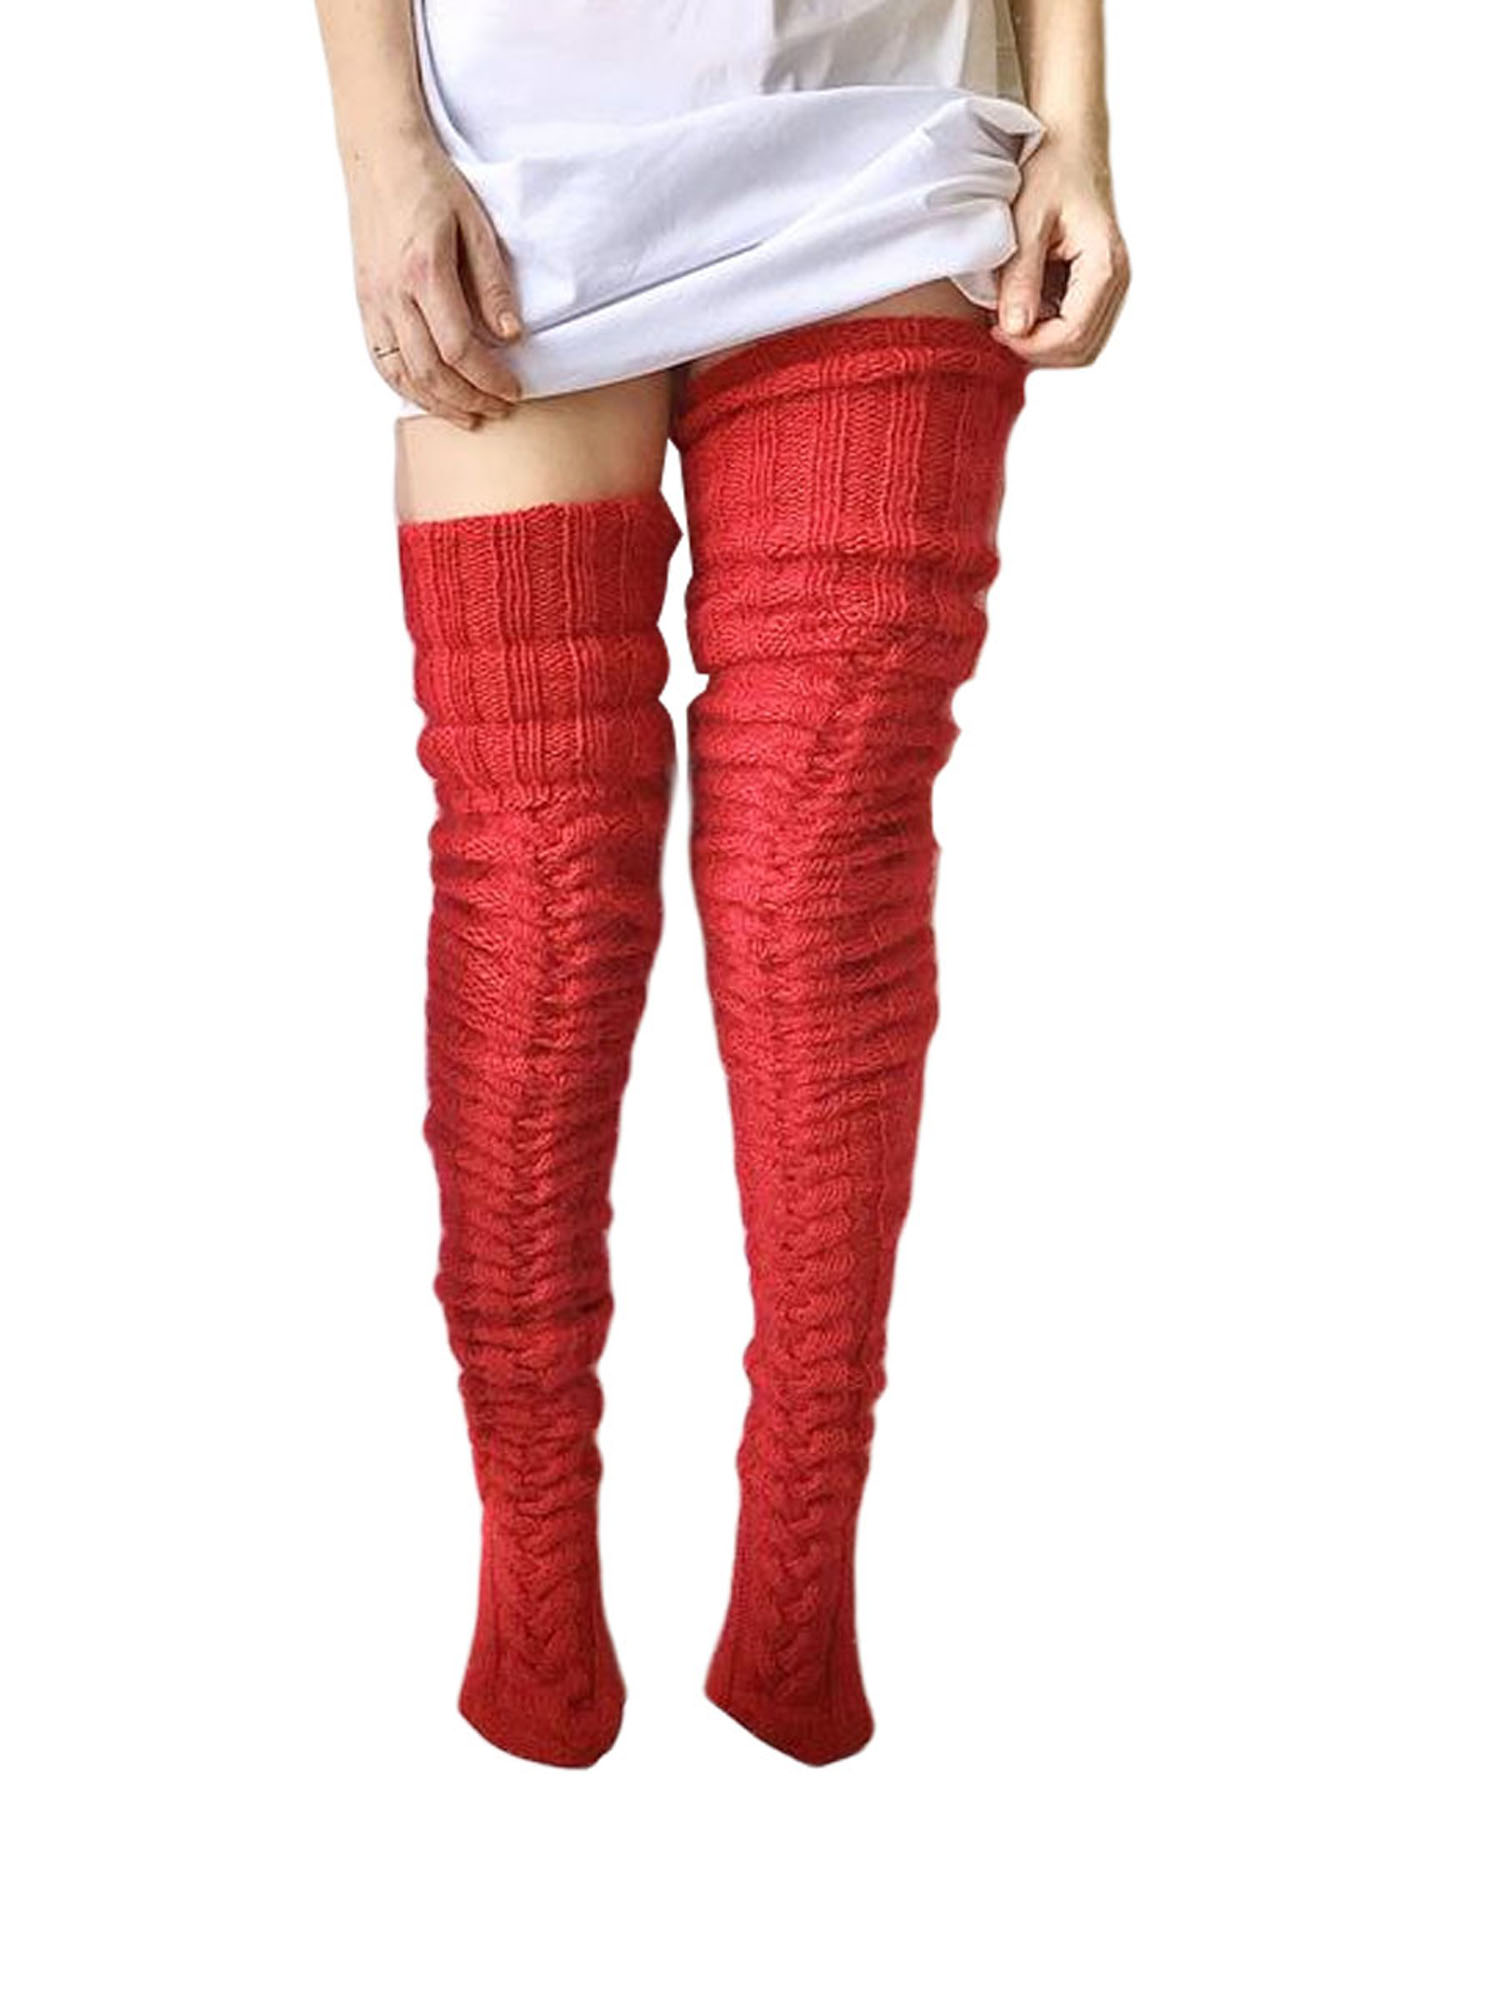 Women Soft Winter Warm Cable Knit Over knee Long Boot Thigh High Socks Stockings